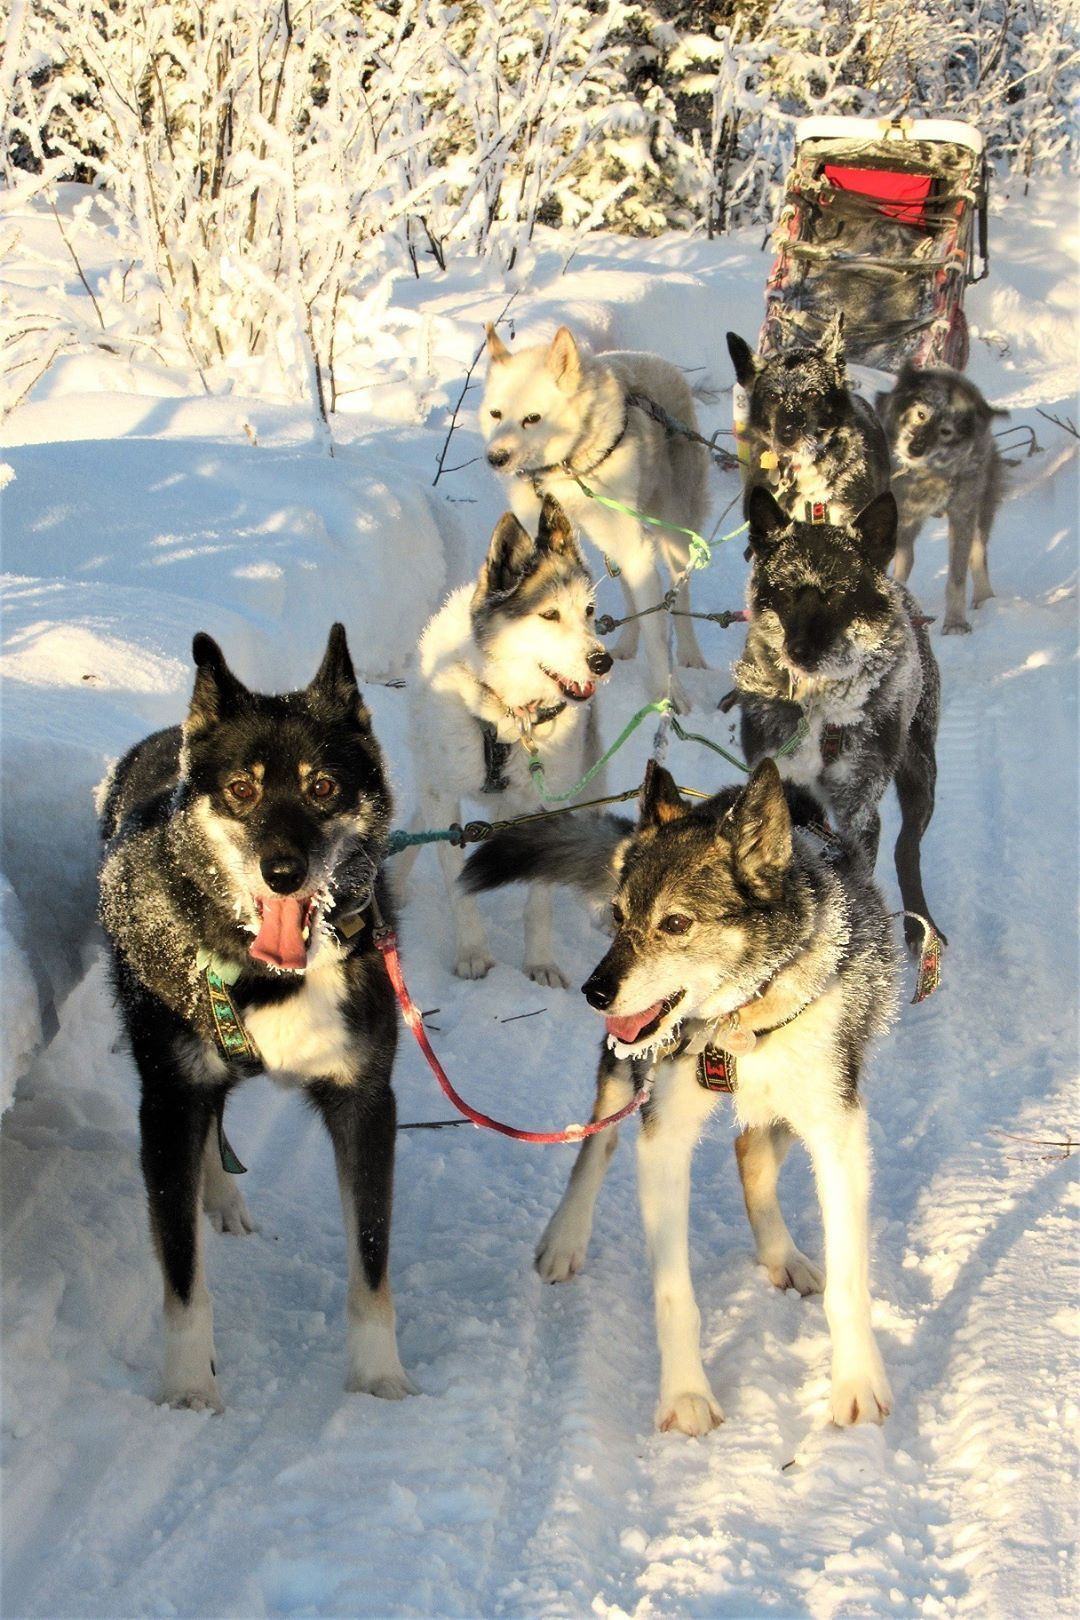 From The Odaroloc Sled Dogs Mr Bp Our Tripawd Sled Dog Running